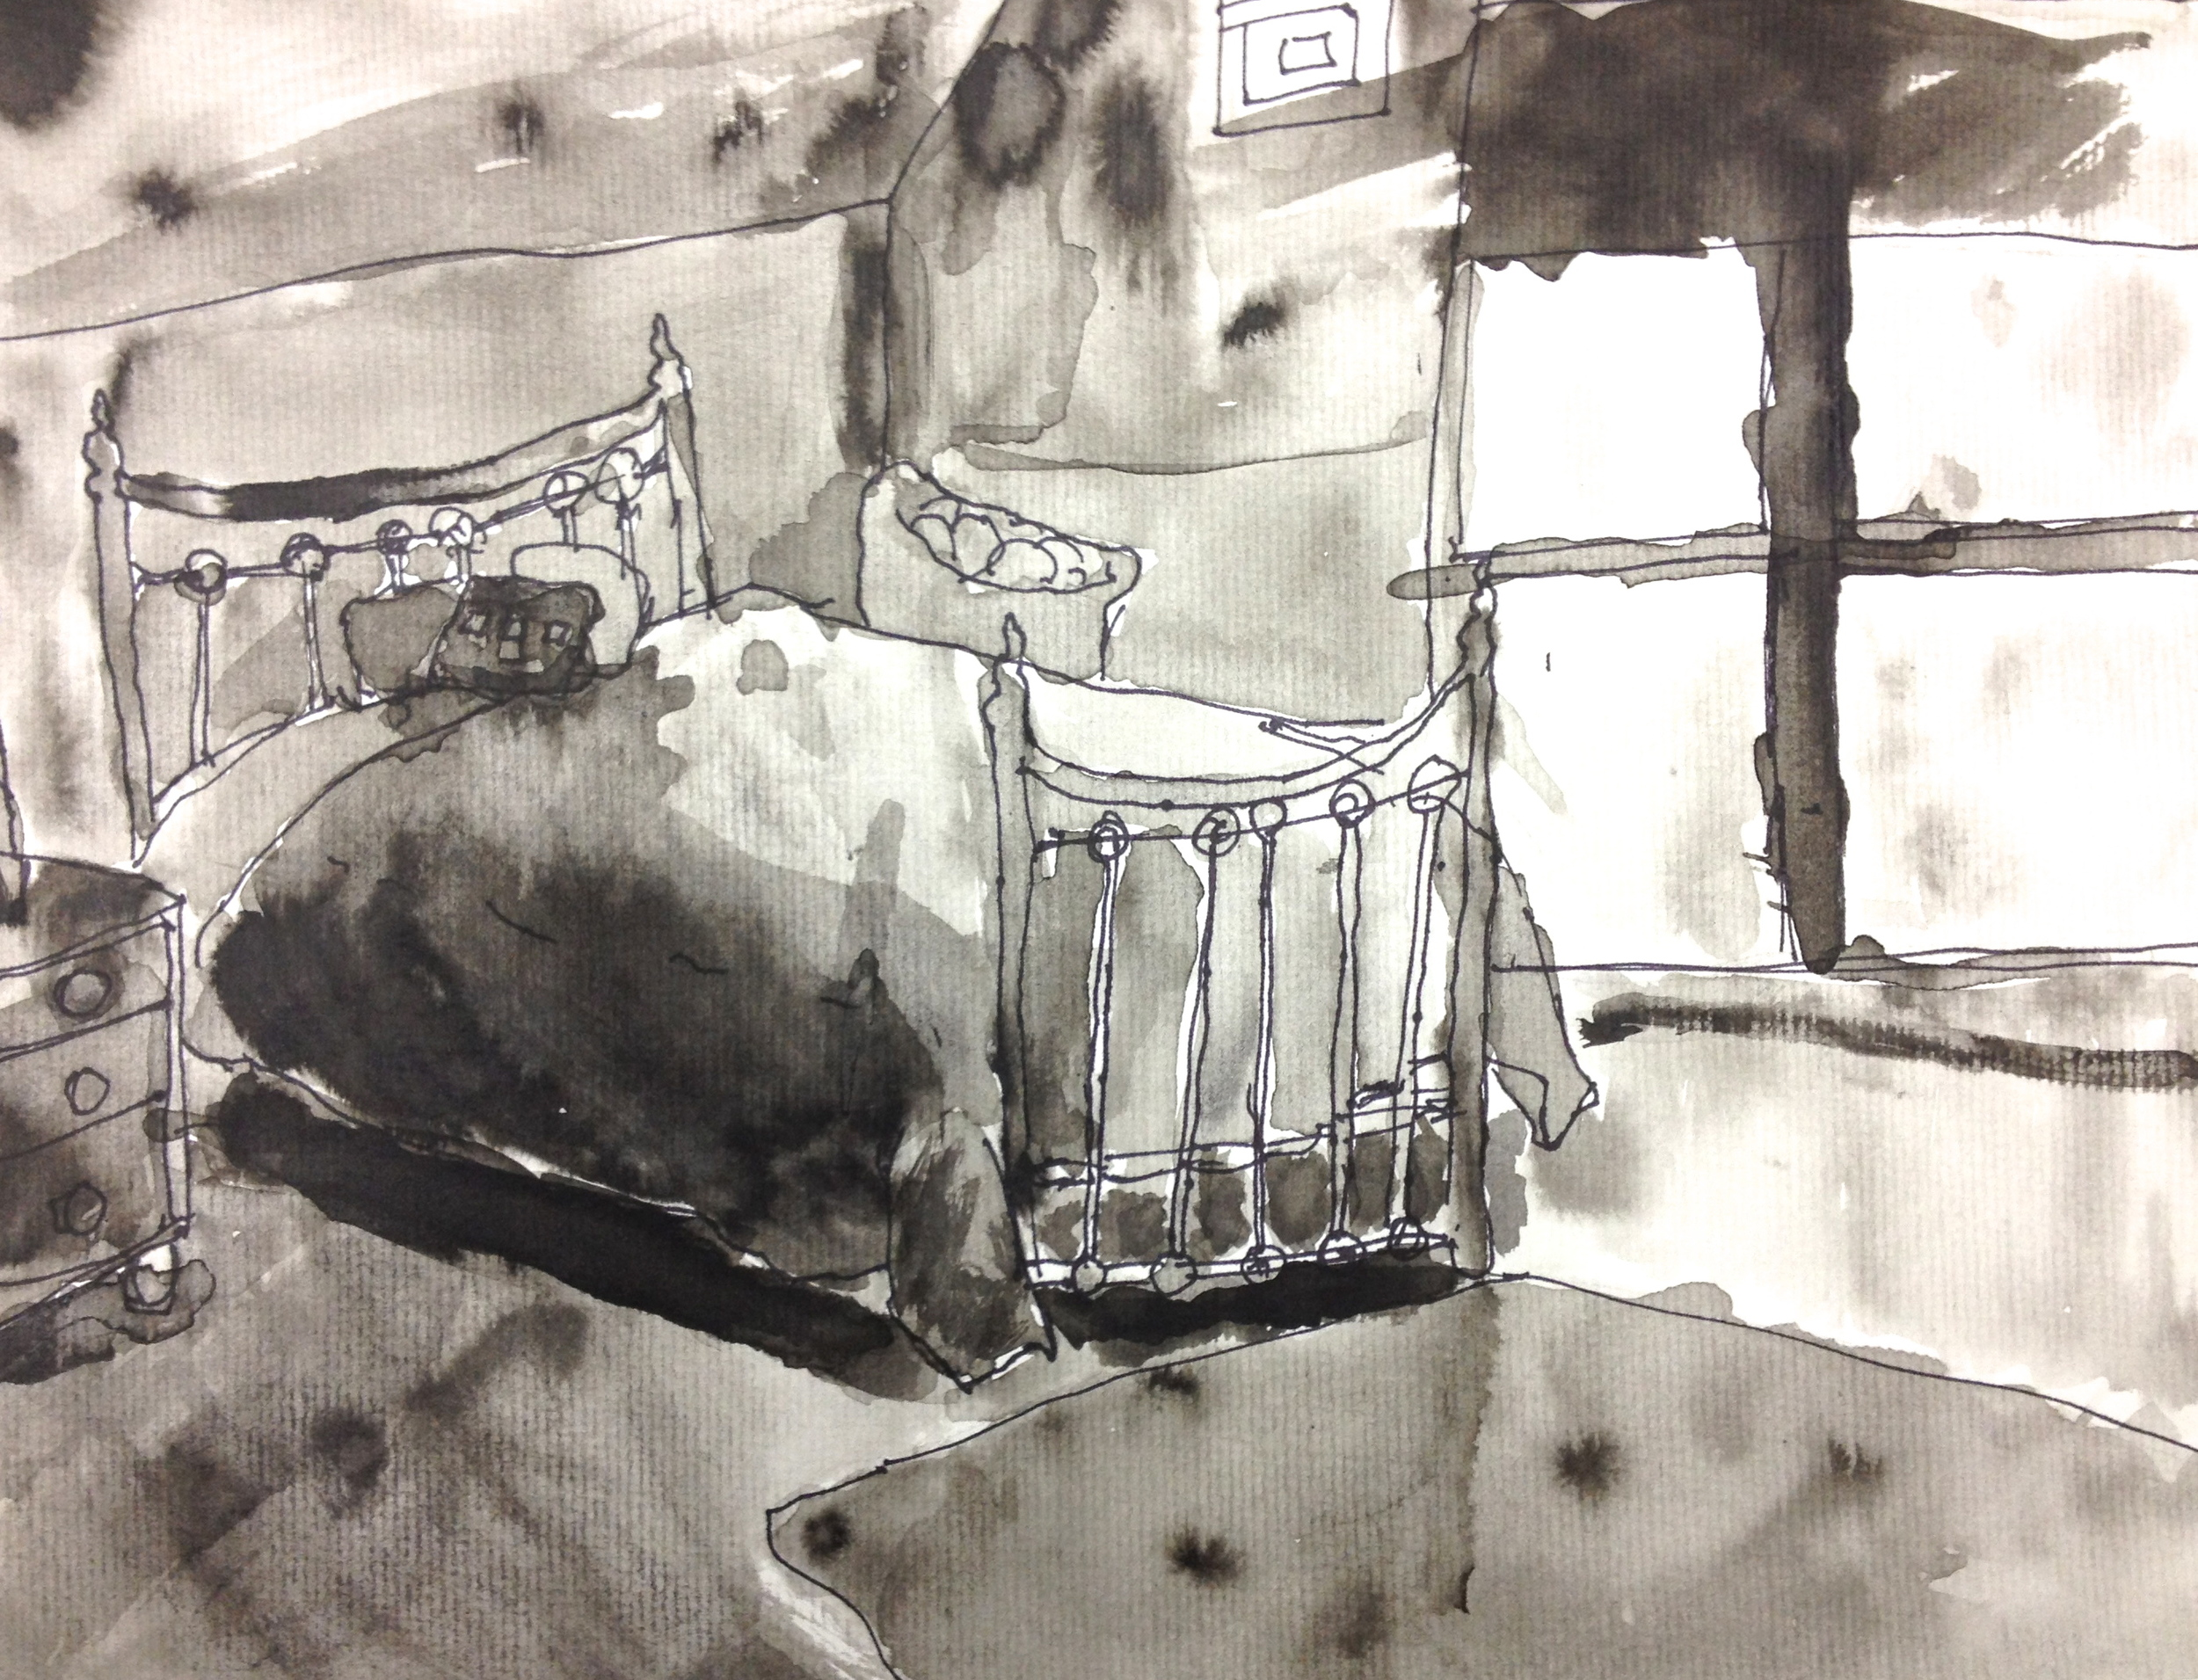 Pen and Ink Interior